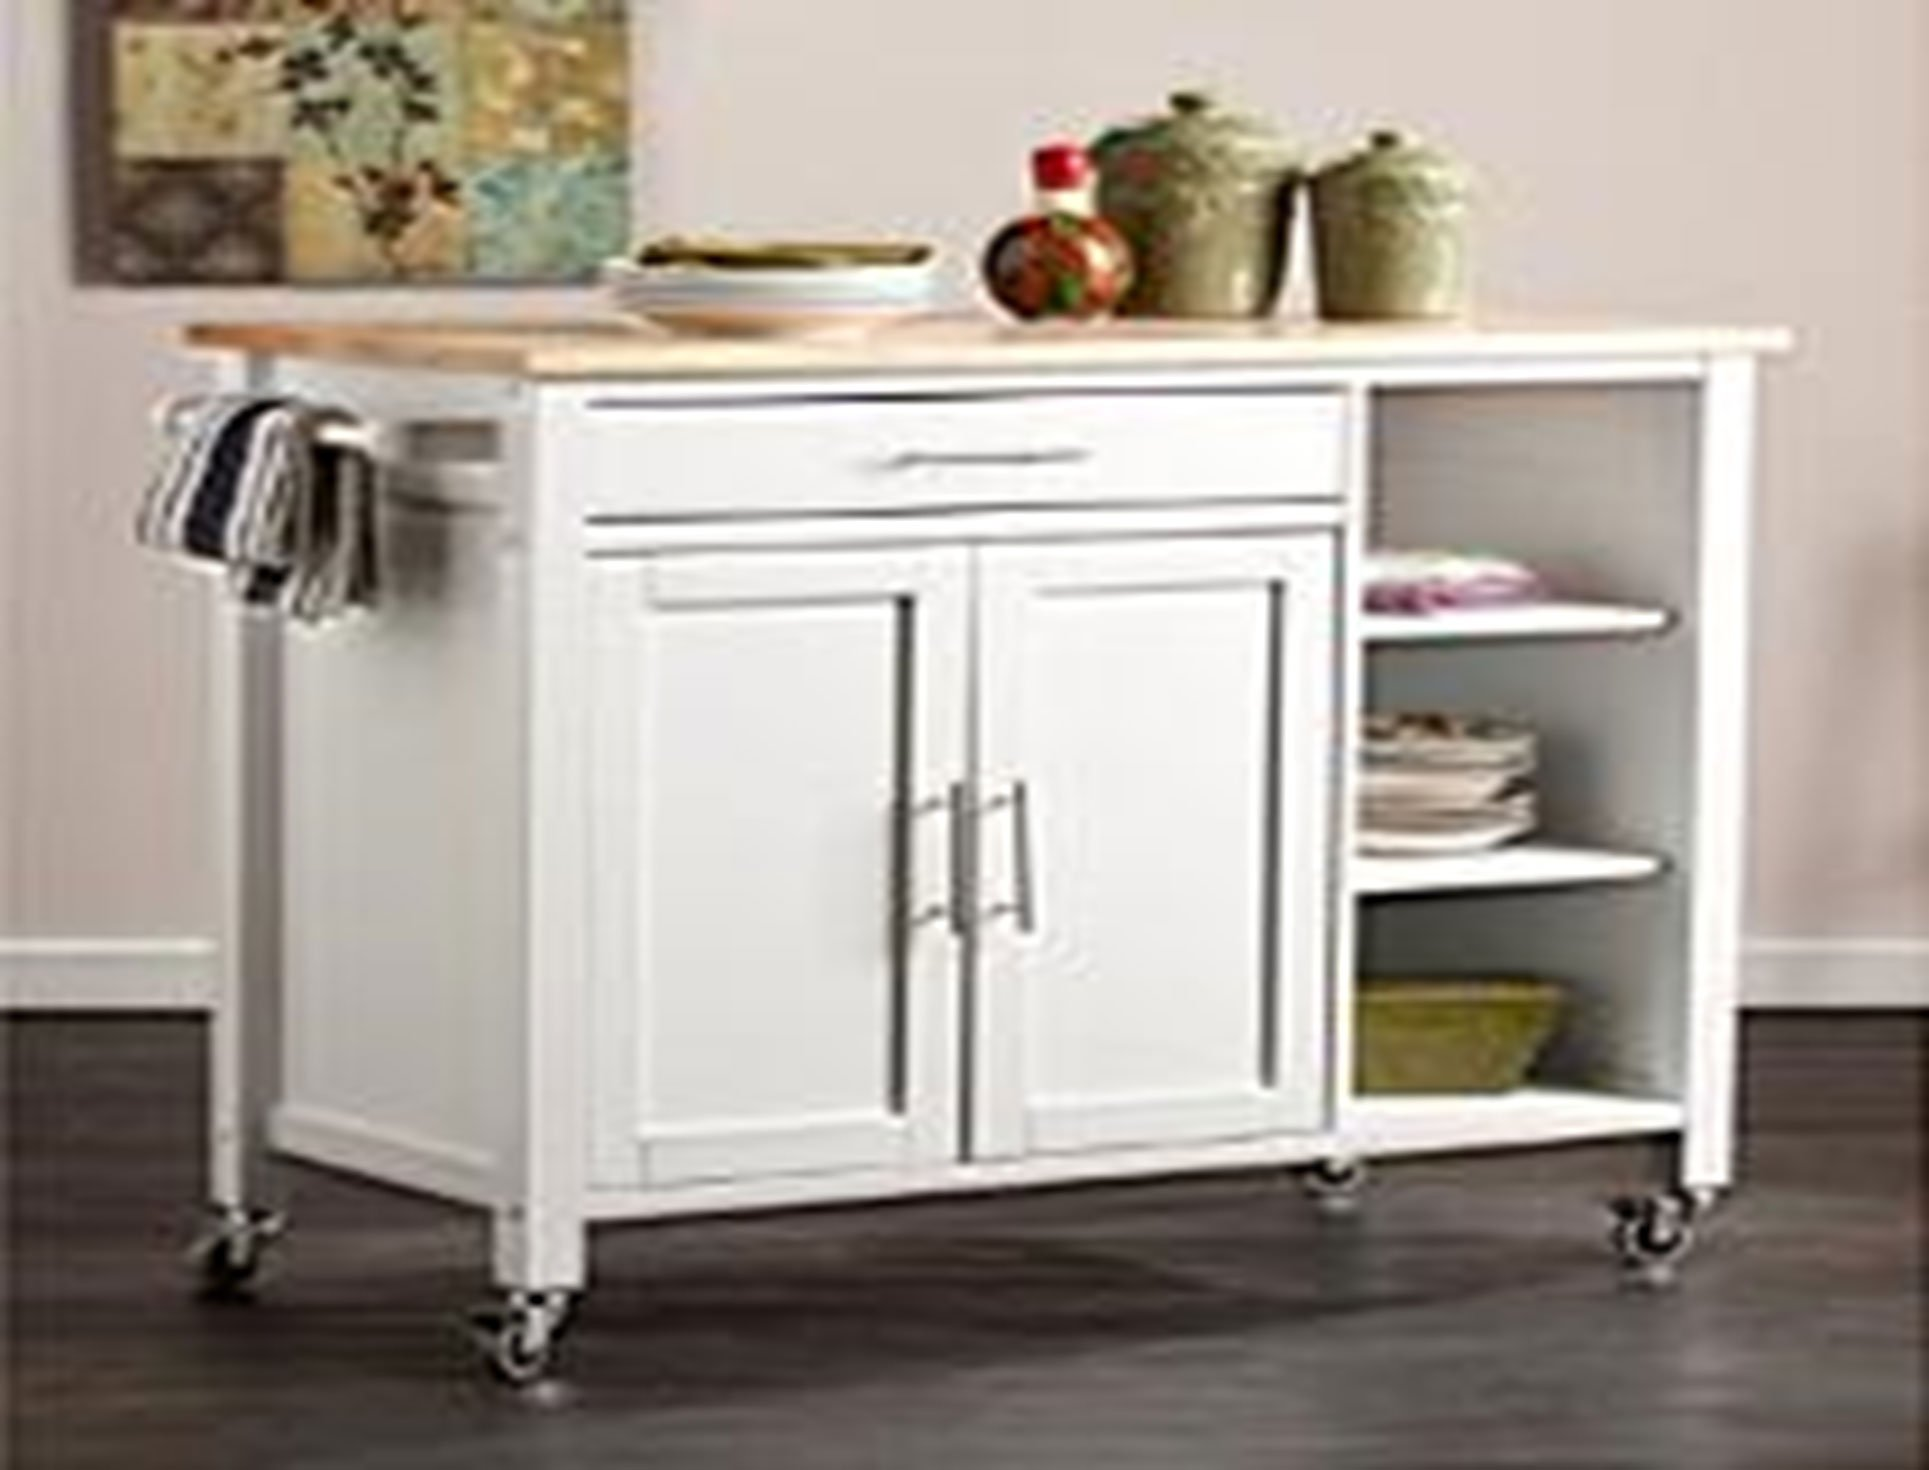 "Oliver and Smith - Nashville Collection - Large Mobile Kitchen Island Cart on Wheels - White - Natural Butcher Block Top - 41"" W x 19"" L x 36"" H 102096-01white"